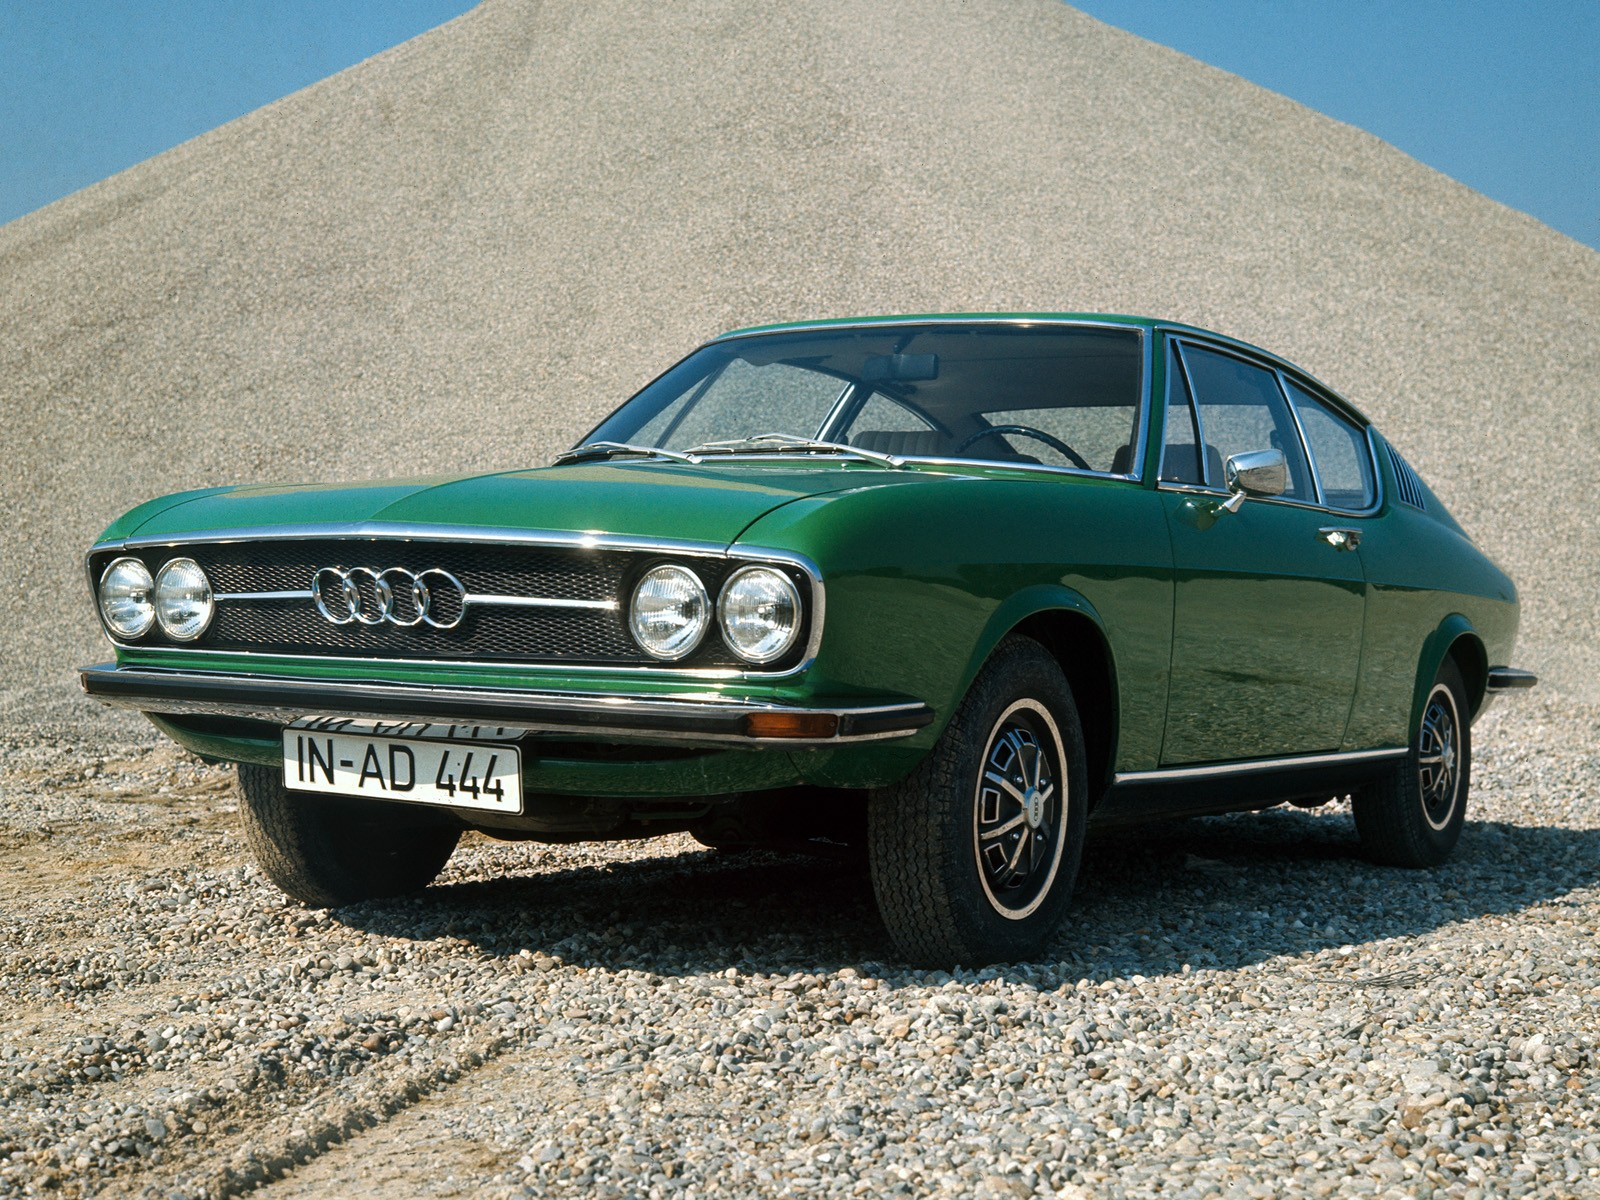 audi 100 coupe s specs 1970 1971 1972 1973 1974 1975 1976 autoevolution. Black Bedroom Furniture Sets. Home Design Ideas